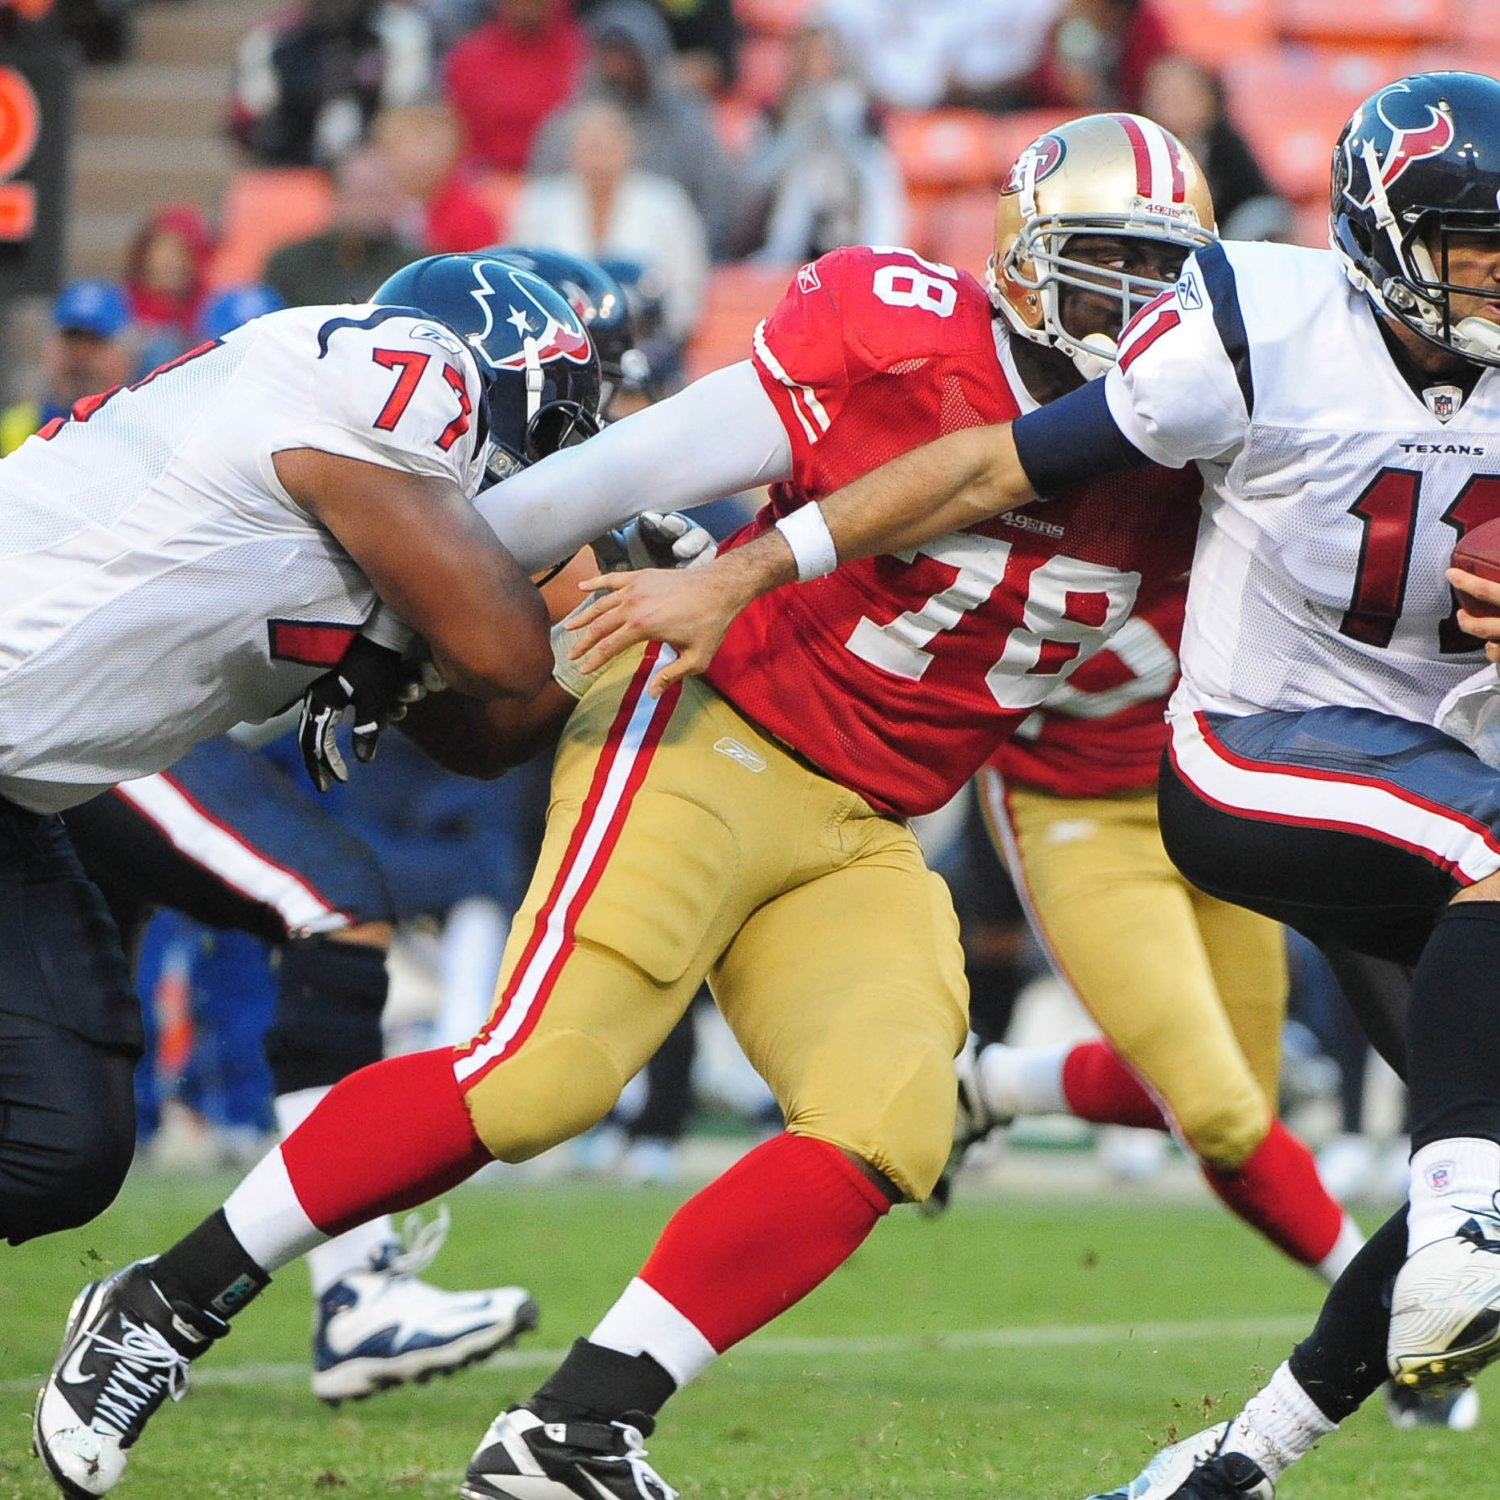 San Diego Chargers Future Opponents: DeMarcus Dobbs Has A Very Bright Future With The 49ers